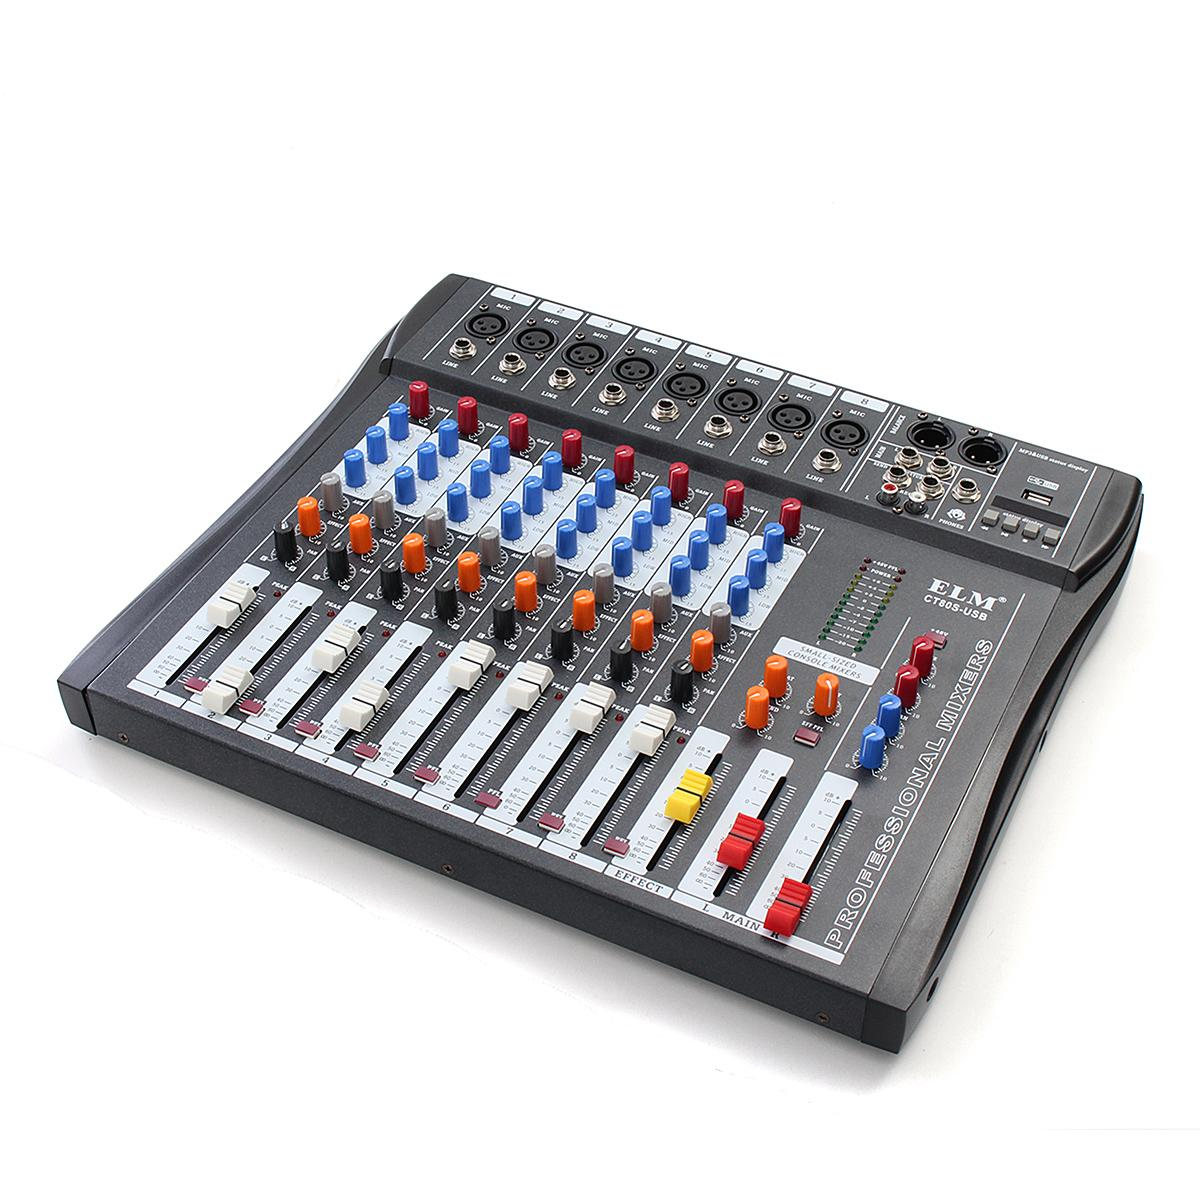 ELM 8 Channel Karaoke Audio Mixing Console For Microphone Amplifier Professional DJ Sound Mixer With 48V Phantom Power USB Jack